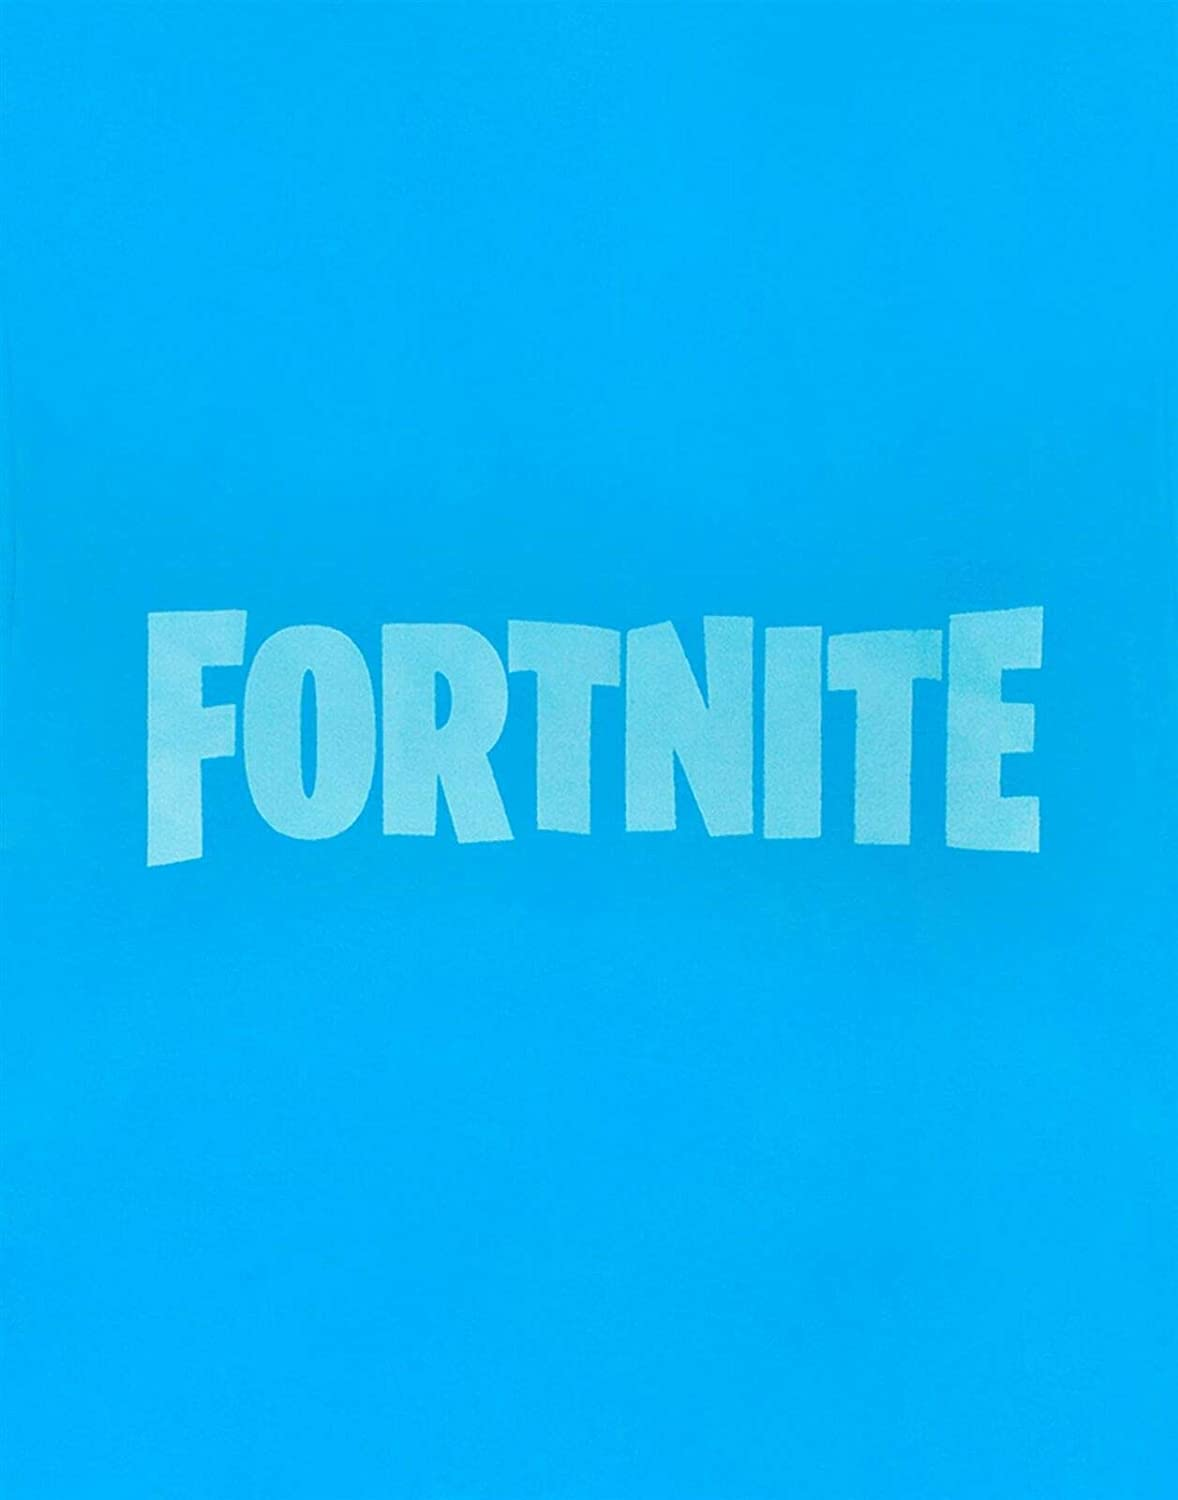 Amazon Com Fortnite Logo Boys Blue T Shirt Battle Royale Kids Tee Clothing It doesn't need any professional skills. fortnite logo boys blue t shirt battle royale kids tee